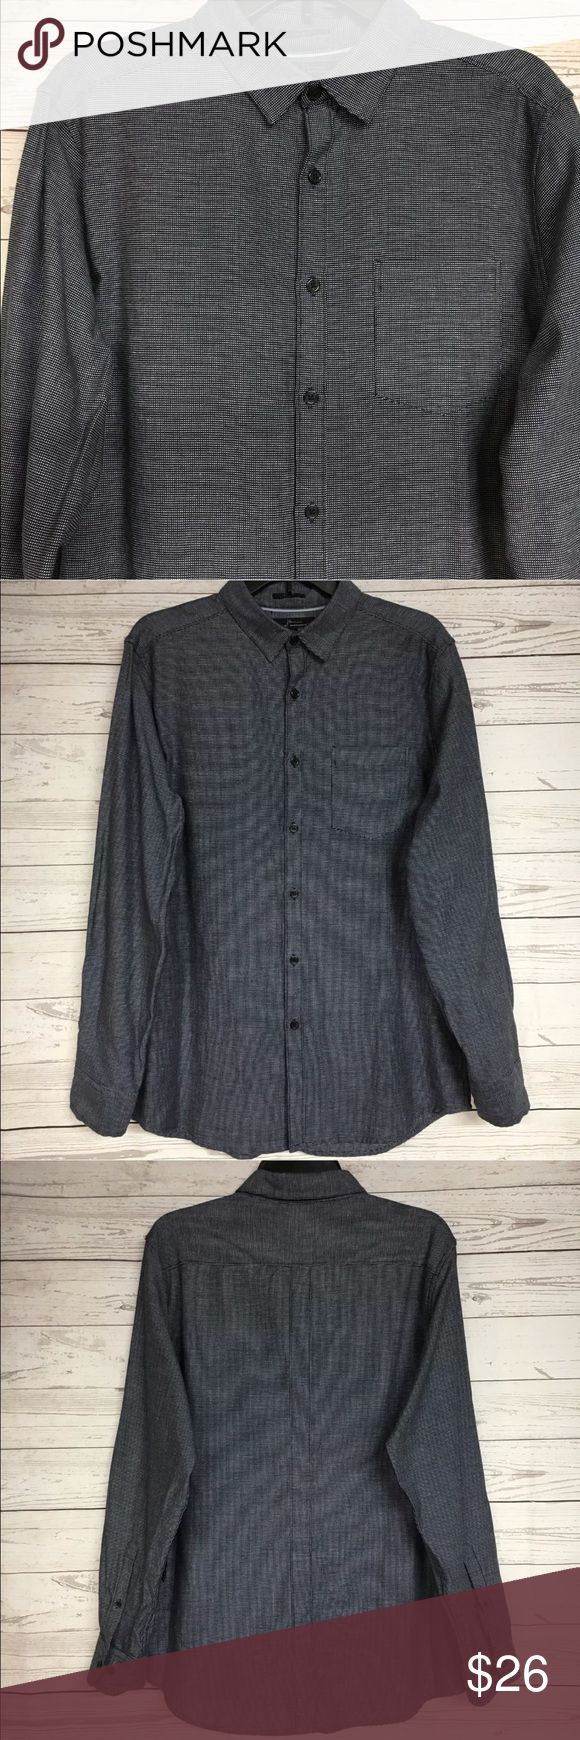 """Marc Anthony slim fit long sleeve gray NWT XXl. Brand new with tags. Please refer to images for more details about this item. If you have any questions lease feel free to ask. Measure,nets are taken with the item laying flat.  Armpit to armpit 23"""" Shoulder to hem 29"""" Marc Anthony Shirts Tees - Long Sleeve"""